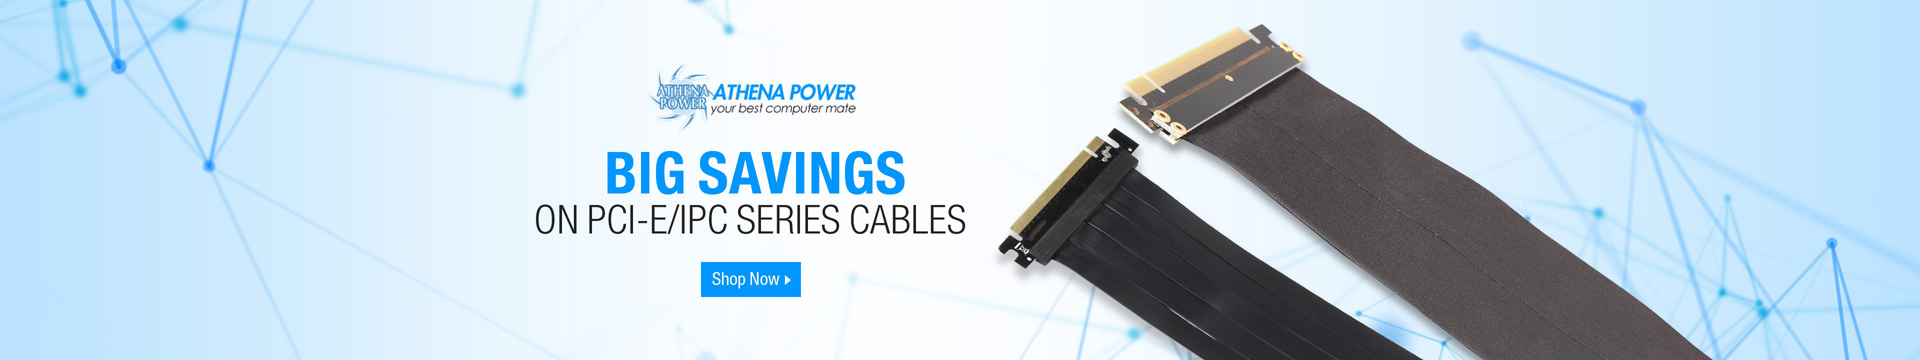 Big savings on PCI-E/IPC SERIES CABLES